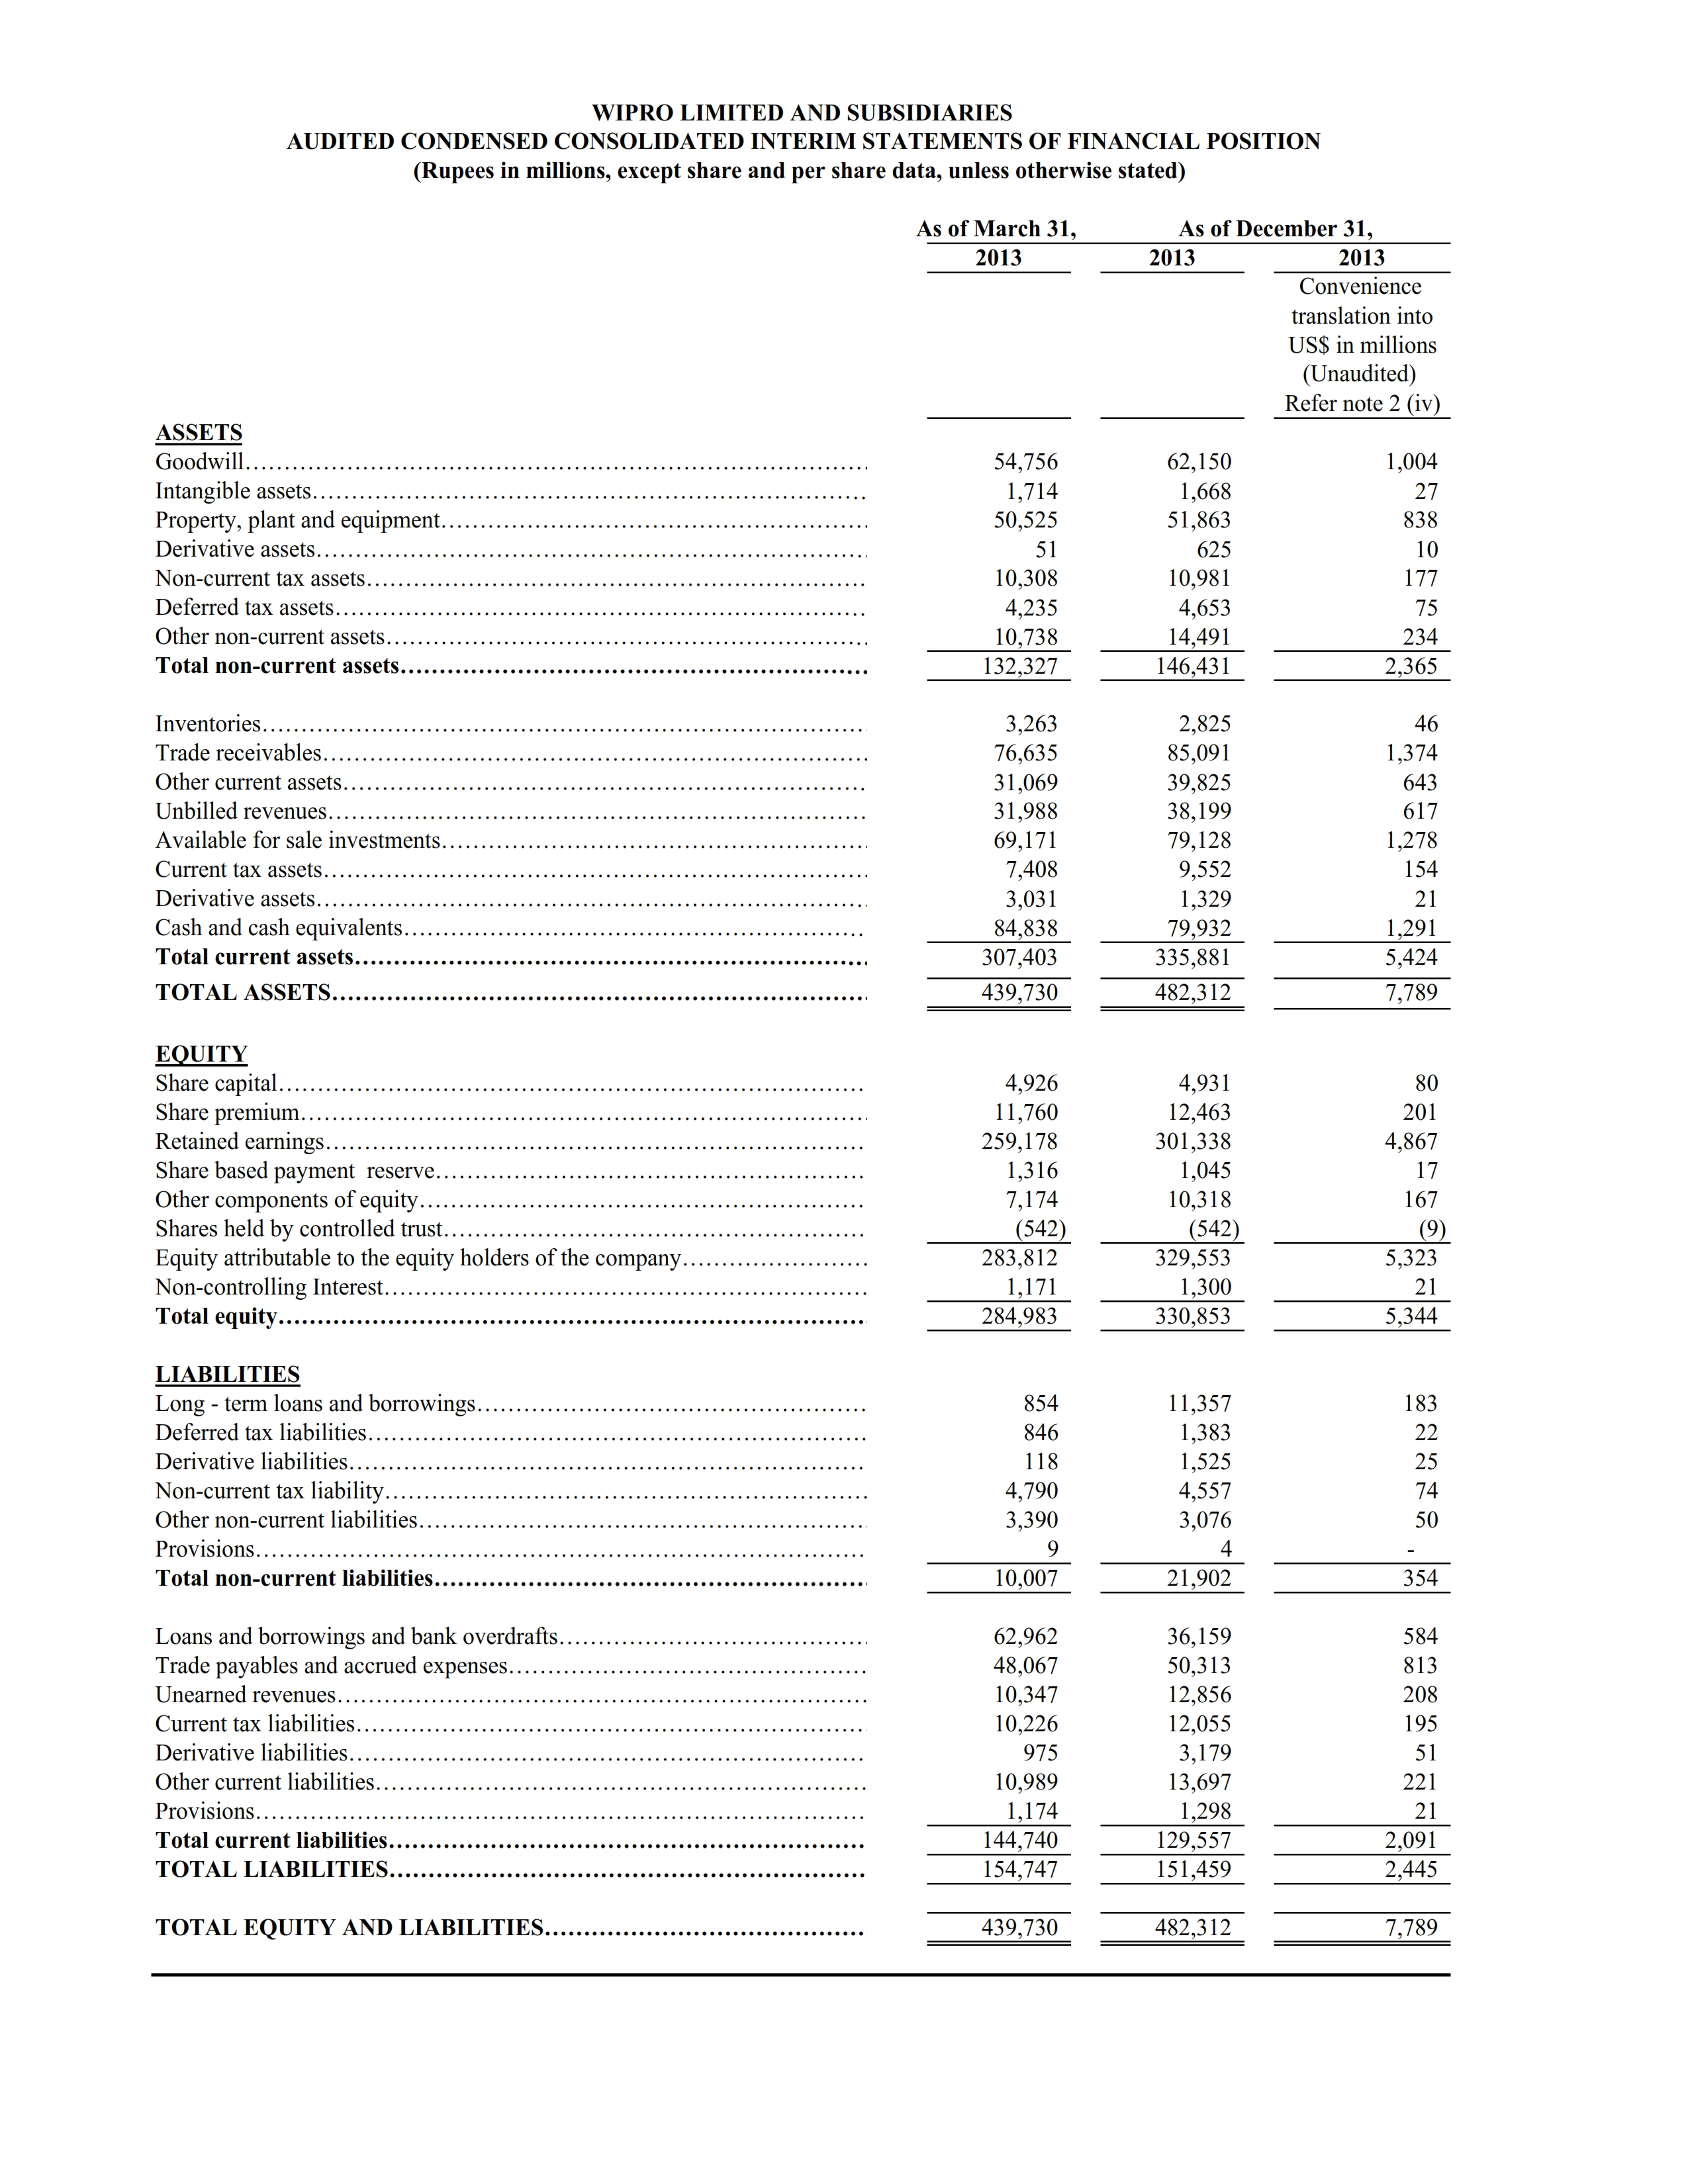 Results for the quarter ended December 31, 2013 under IFRS